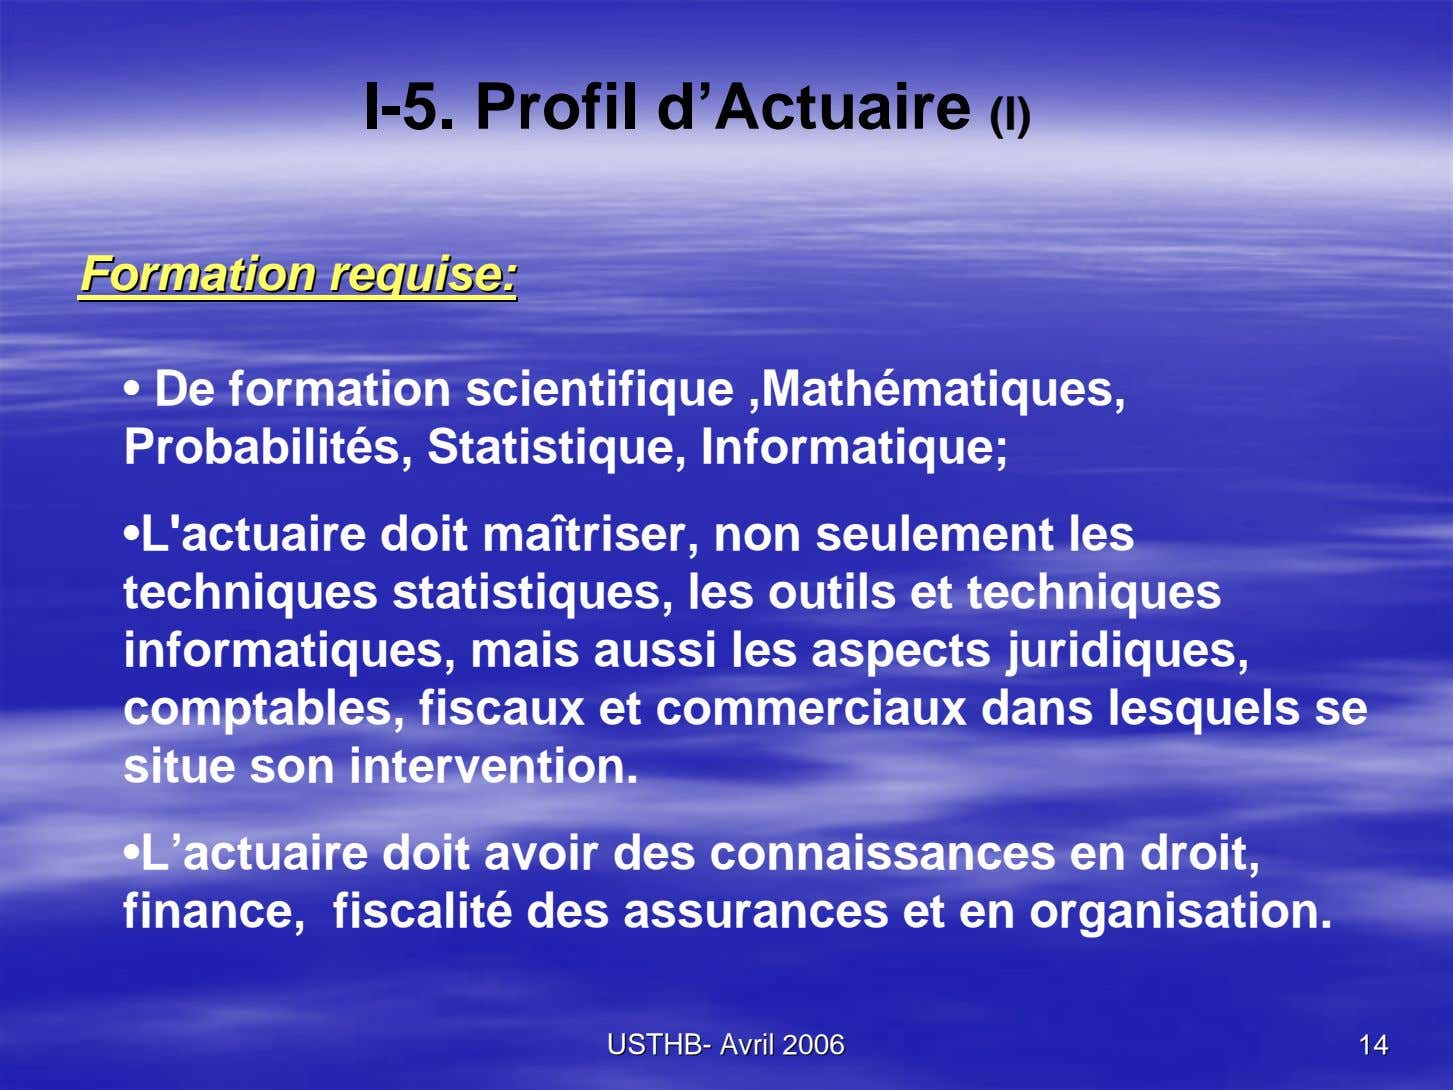 I-5. Profil d'Actuaire (I) FormationFormation requise:requise: • De formation scientifique ,Mathématiques,